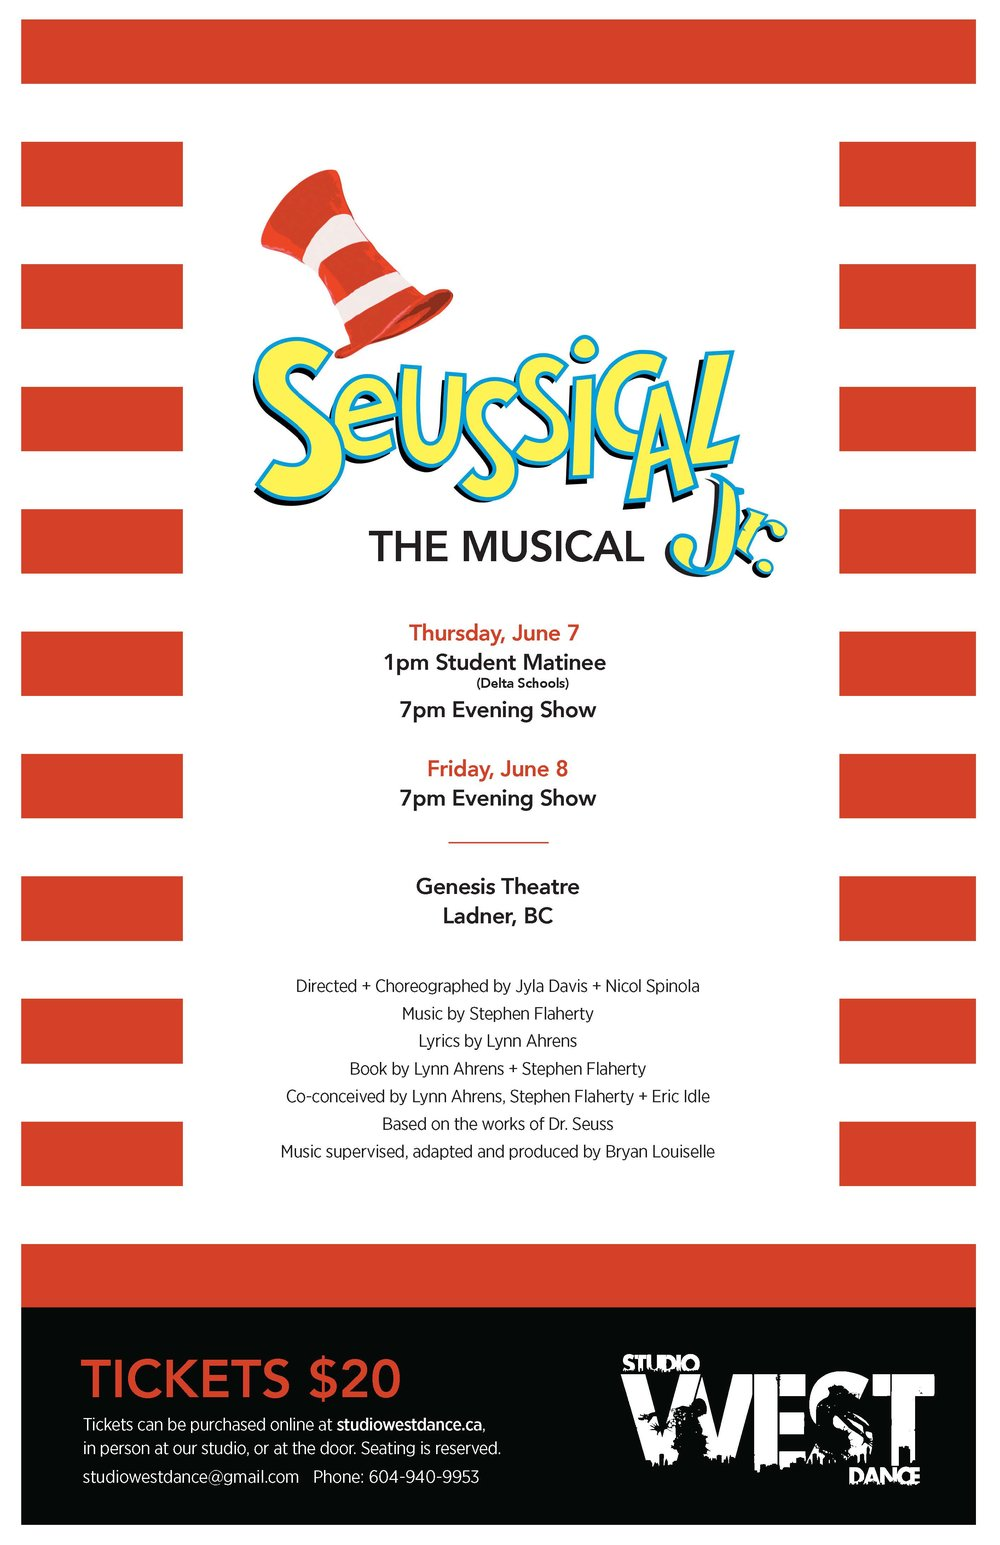 SWD_Poster_SeussicaltheMusical_2018.jpg